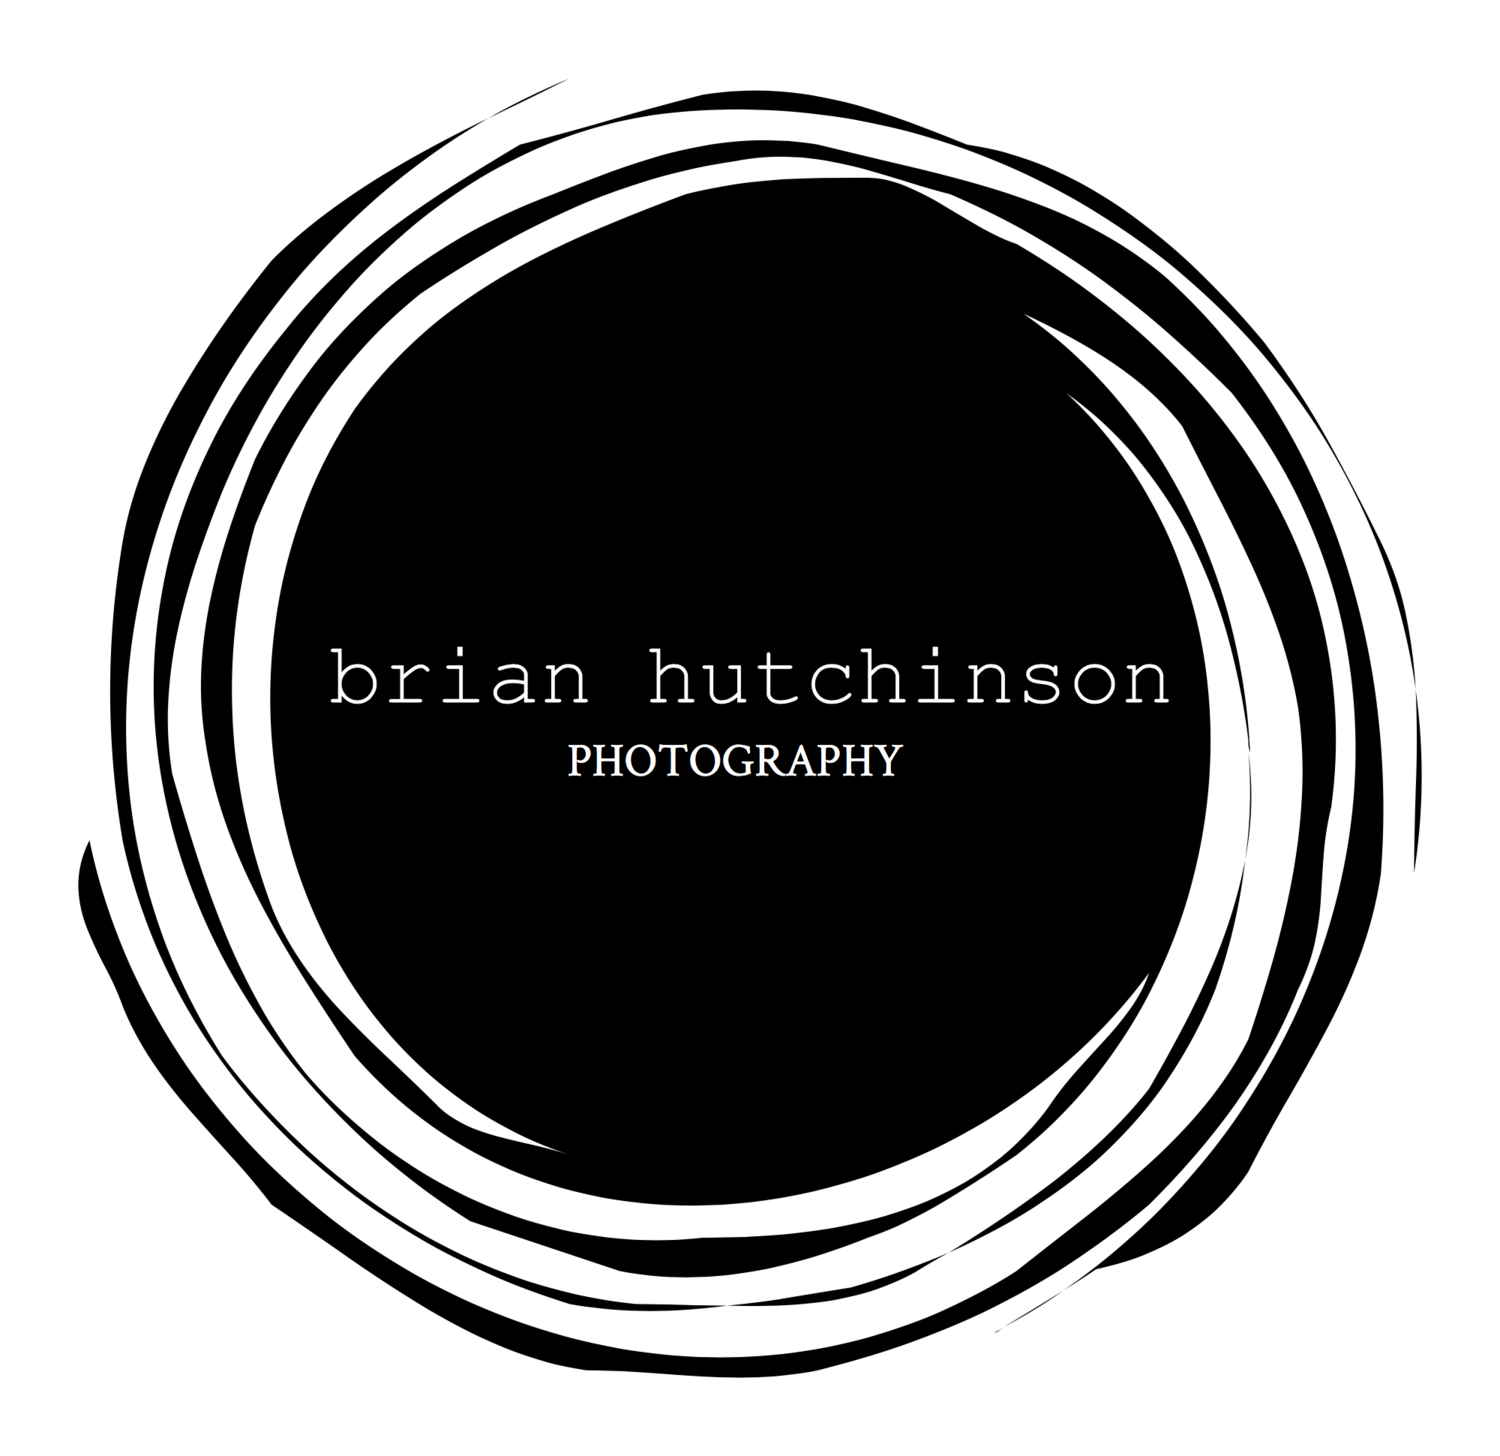 Brian Hutchinson Photography